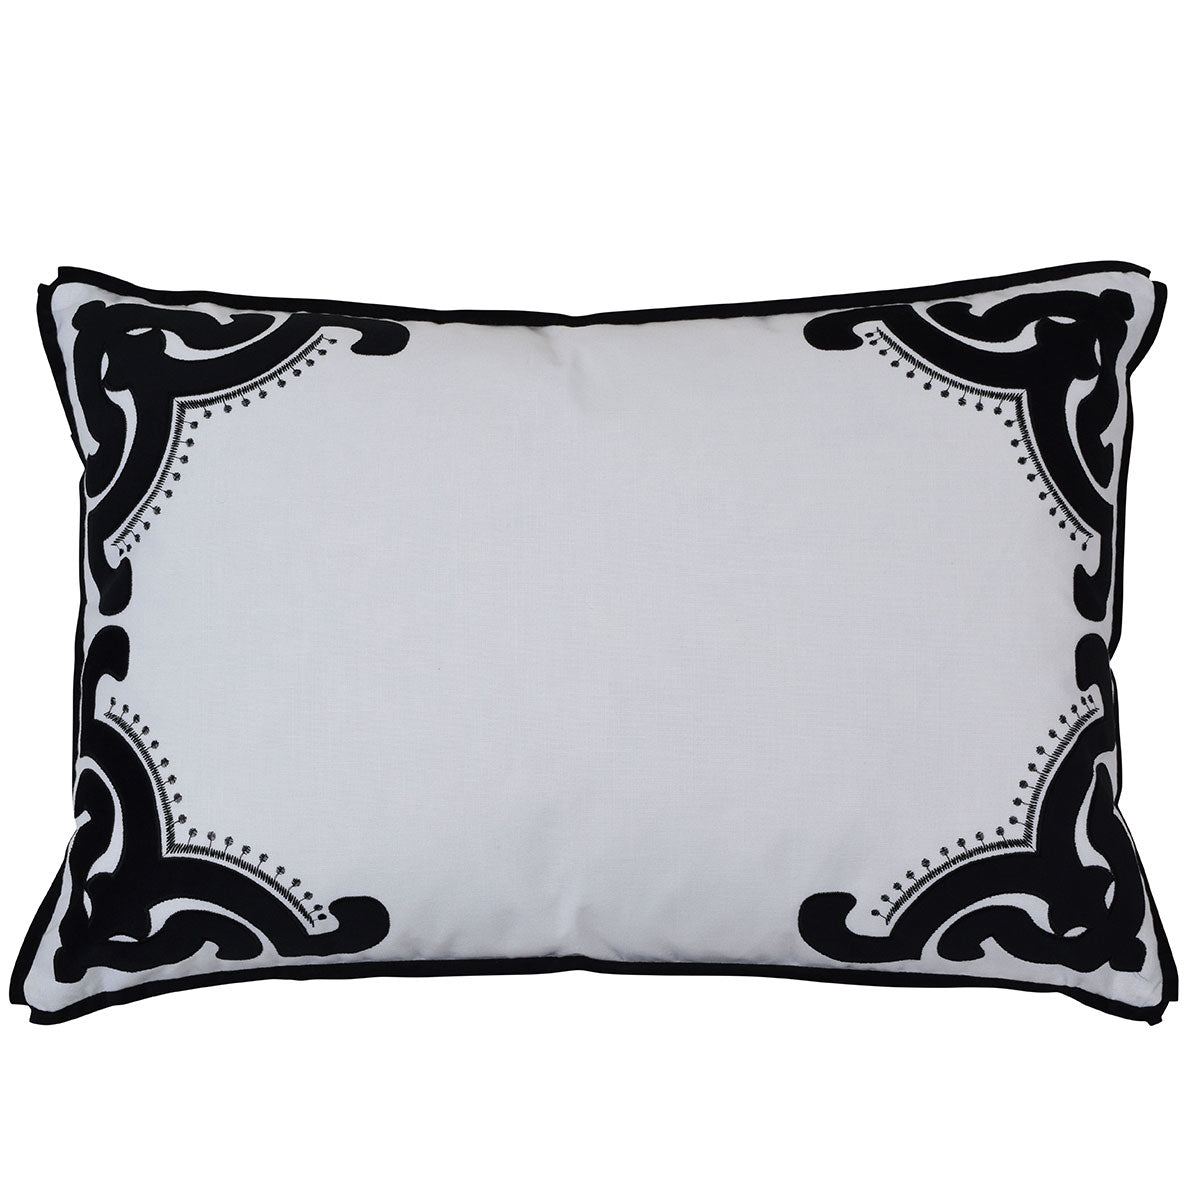 Bronte Black Rectangle cushion cover